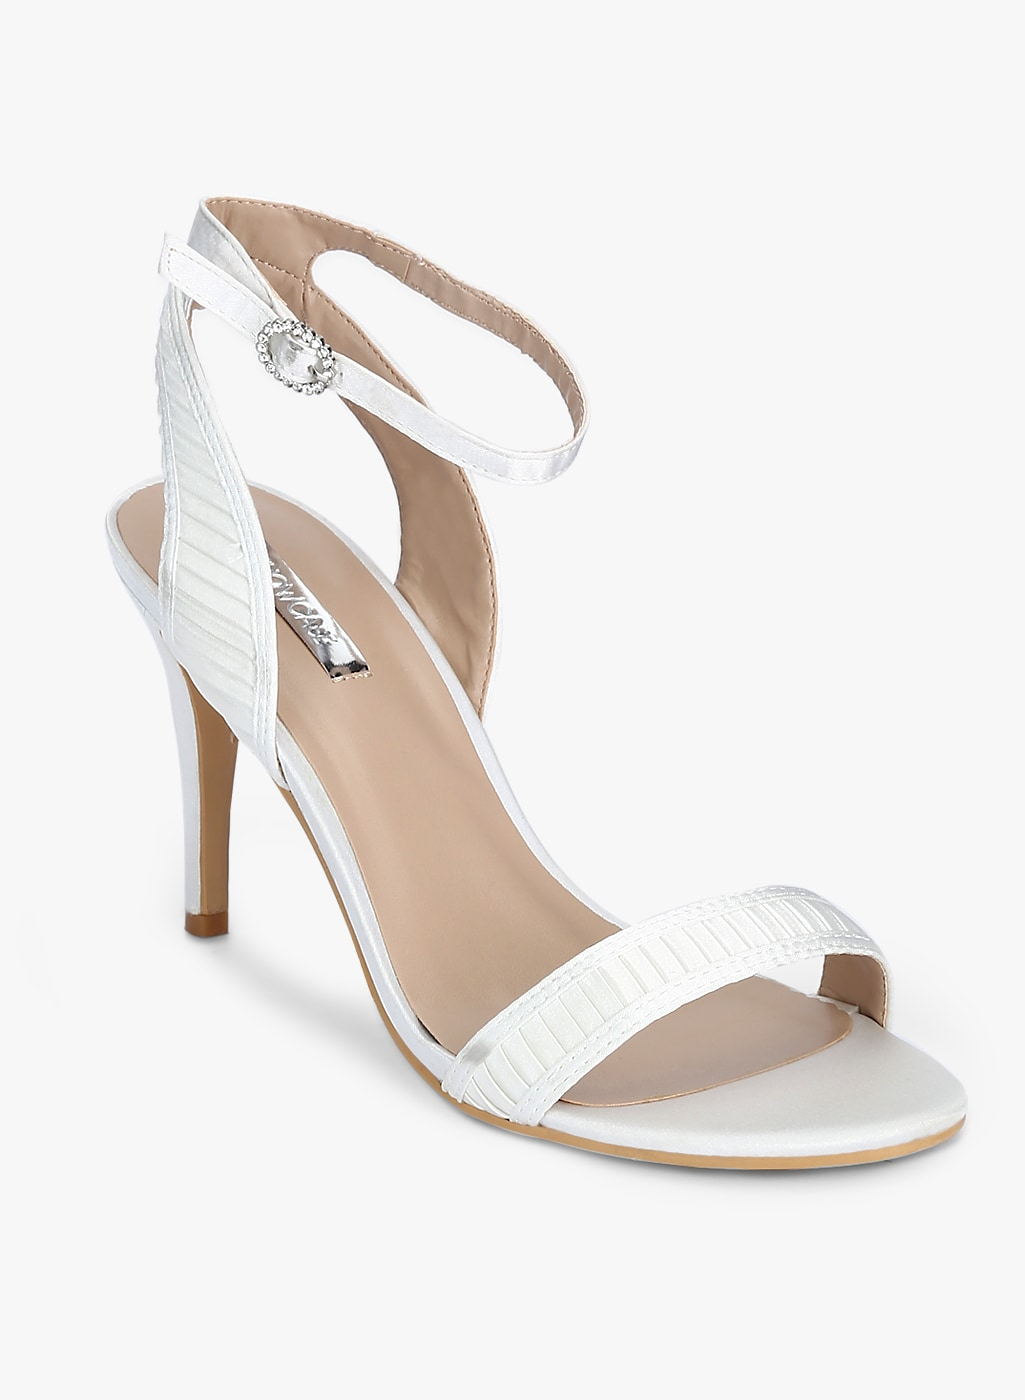 1fc0784c3b Dorothy Perkins White Stilettos for women - Get stylish shoes for ...